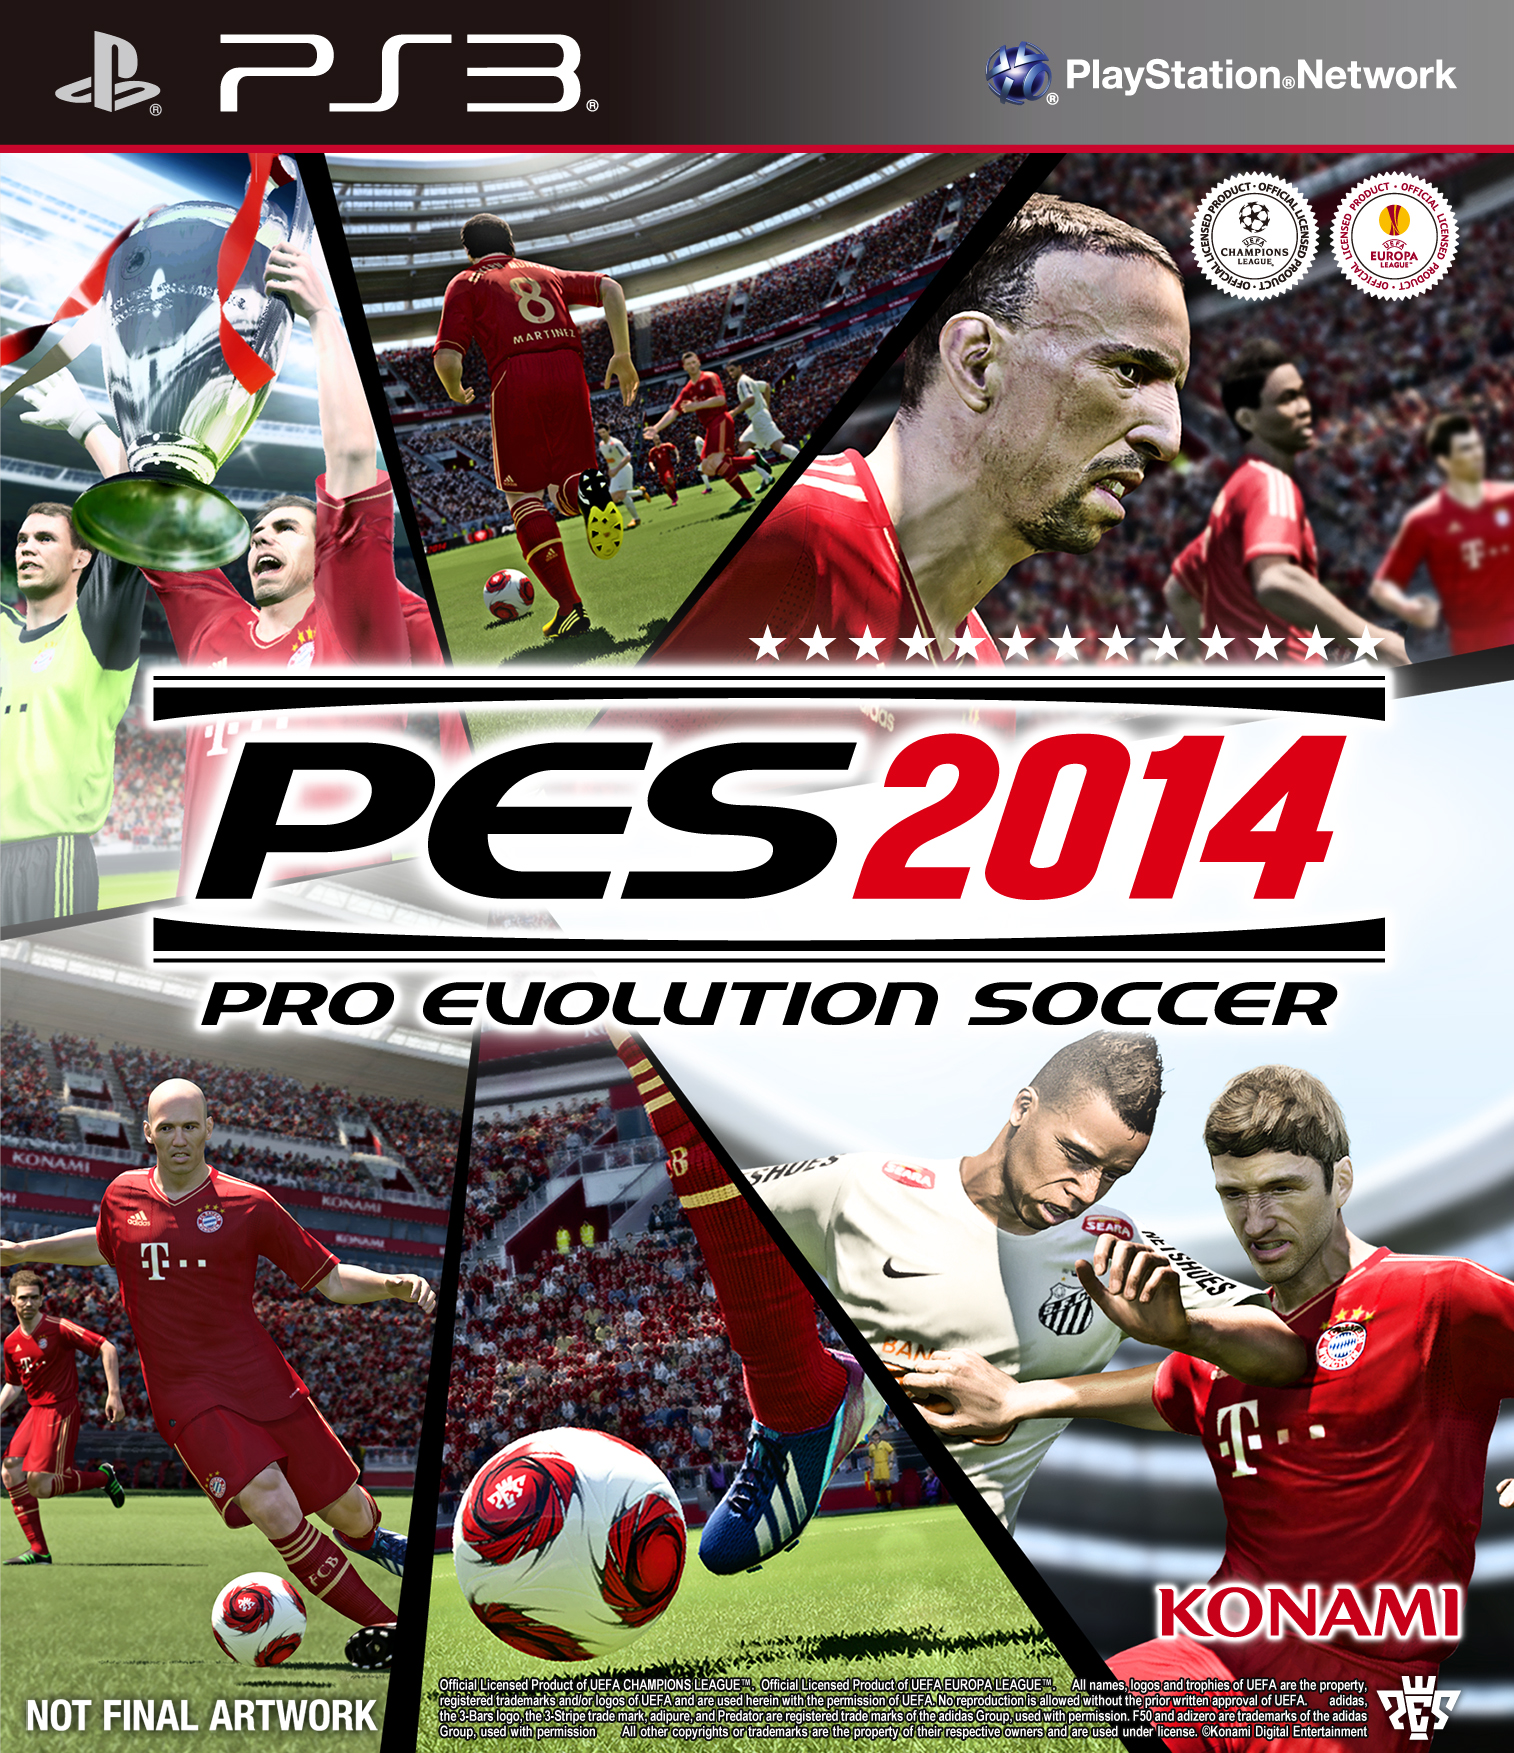 Digital entertainment gmbh has revealed that its forthcoming pes